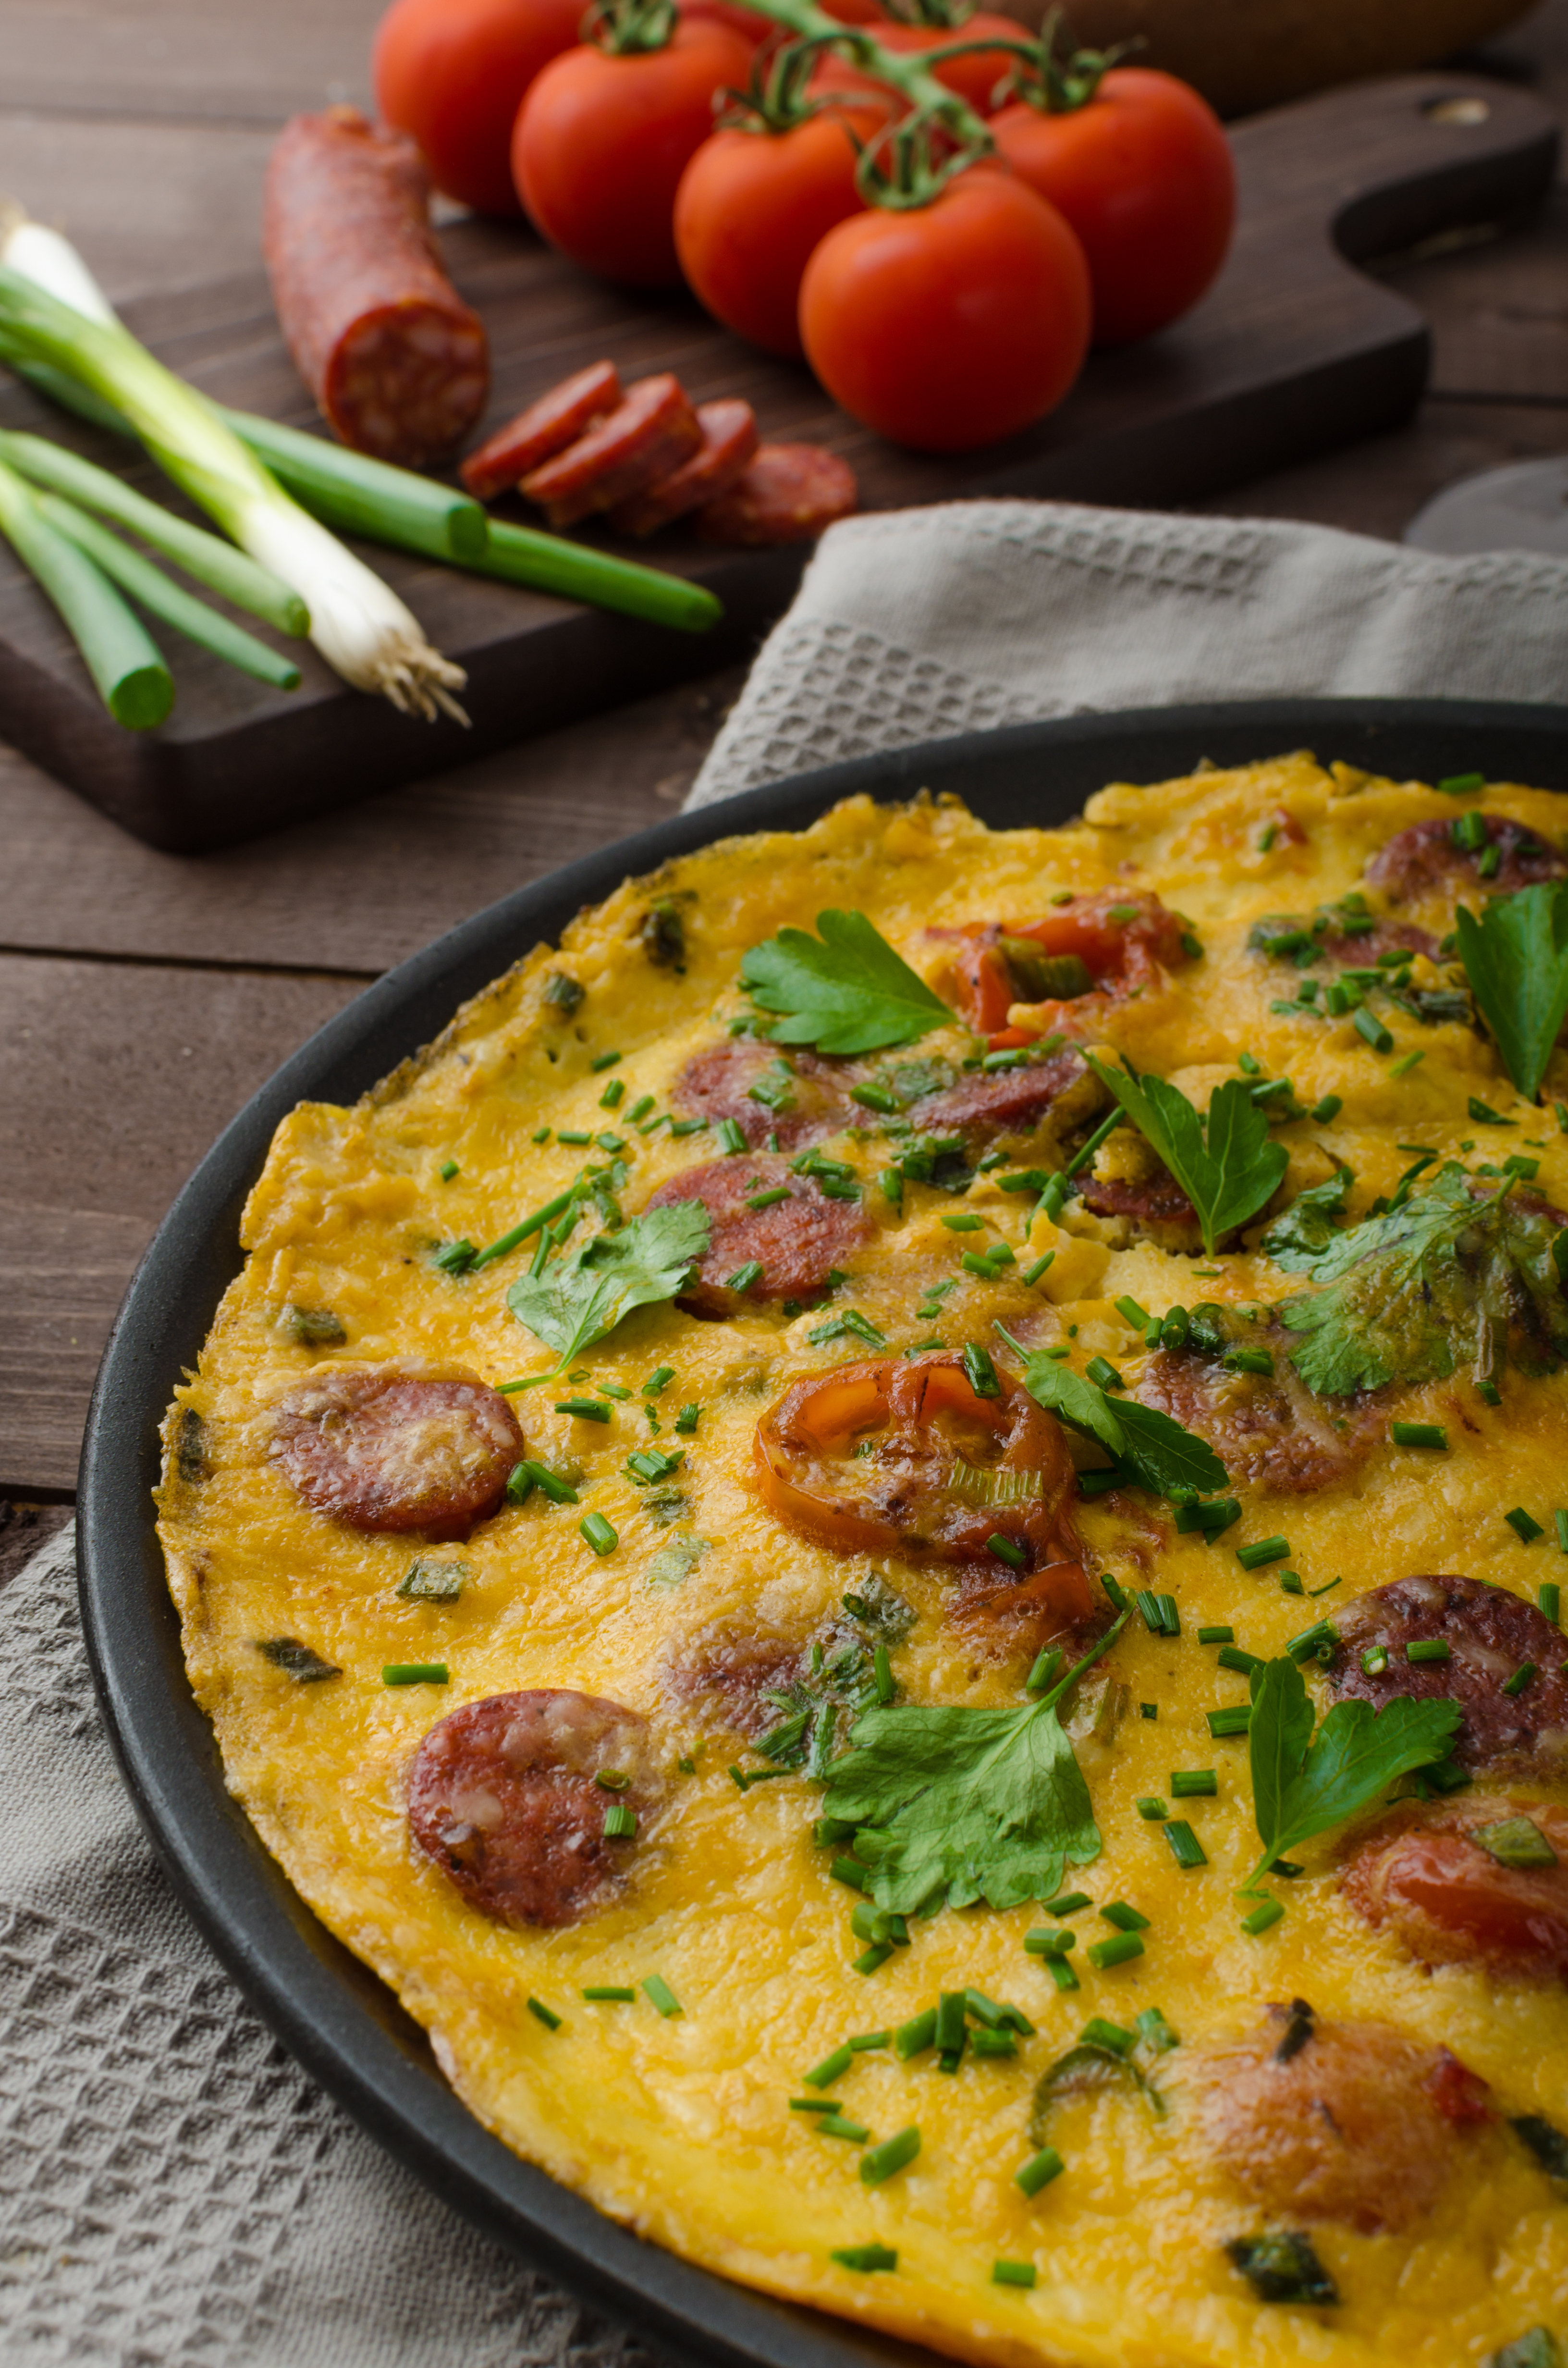 Omelette with chorizo sausage, herbs and tomatoes